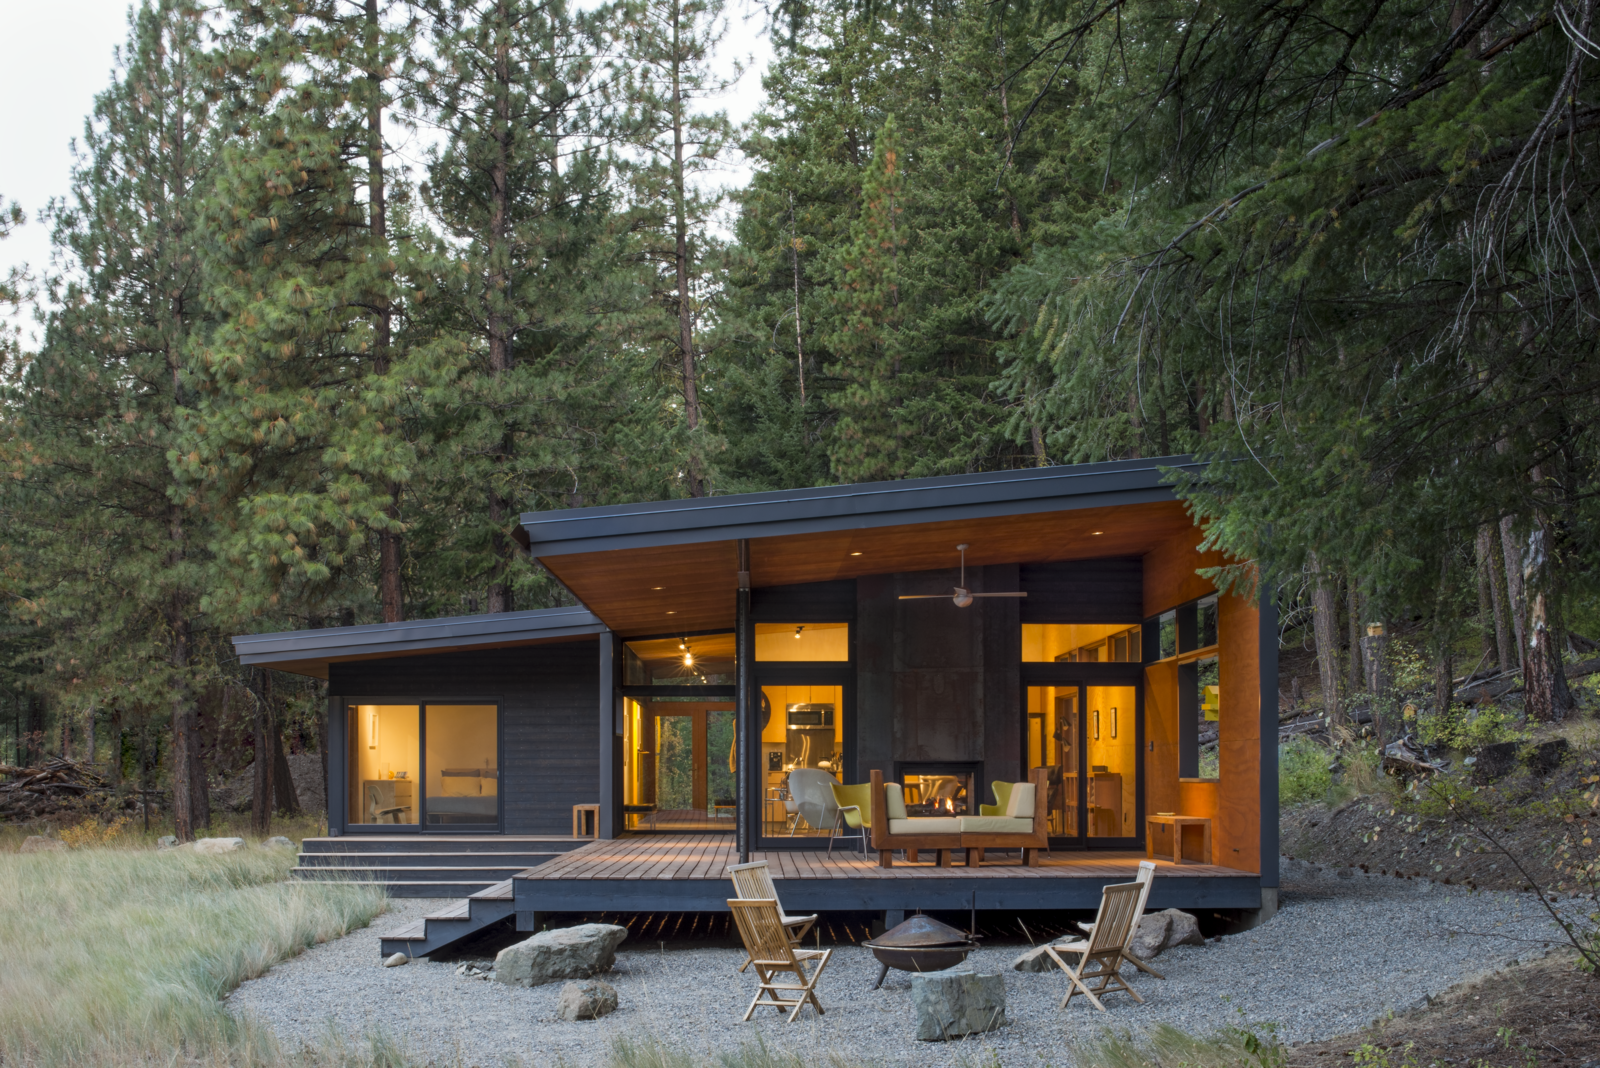 Exterior, Cabin Building Type, Wood Siding Material, and Glass Siding Material In Washington's Methow Valley, a modern cabin with an outdoor living room allows views of the surrounding woodland and meadow to perforate its volume.   By day, the Chechaquo Lot 6 cabin gives the impression of floating in a forest clearing; by night, its windows glow against the wooded darkness. From all vantage points, the landscape permeates this 1,000-square-foot cabin, designed for two outdoor enthusiasts and tucked at the toe of a dramatic slope in Winthrop, Washington.  Best Photos from A Lean Cabin in Washington Dismantles the Indoor/Outdoor Divide